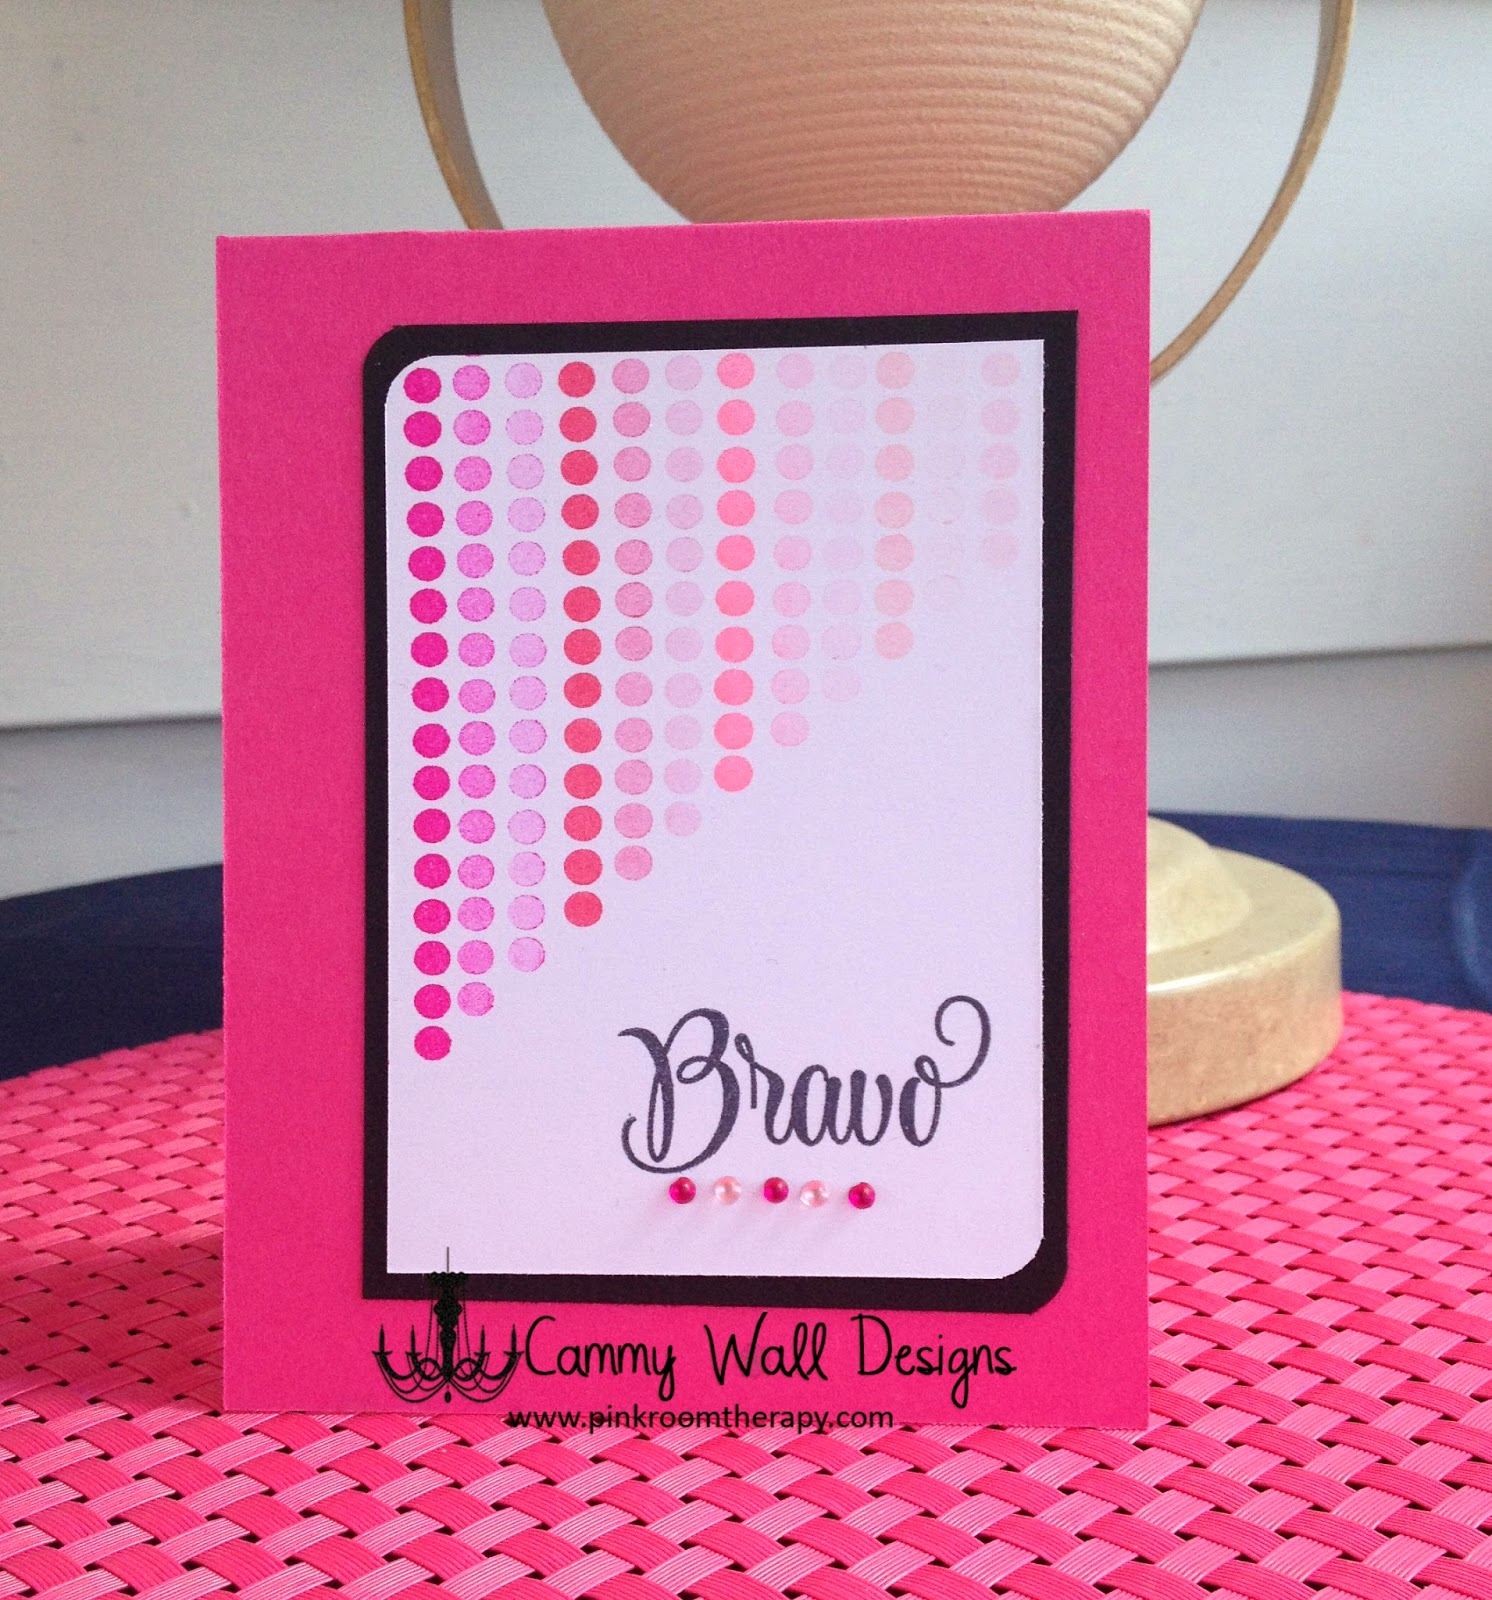 Year in Review   Pink Room Therapy Designs